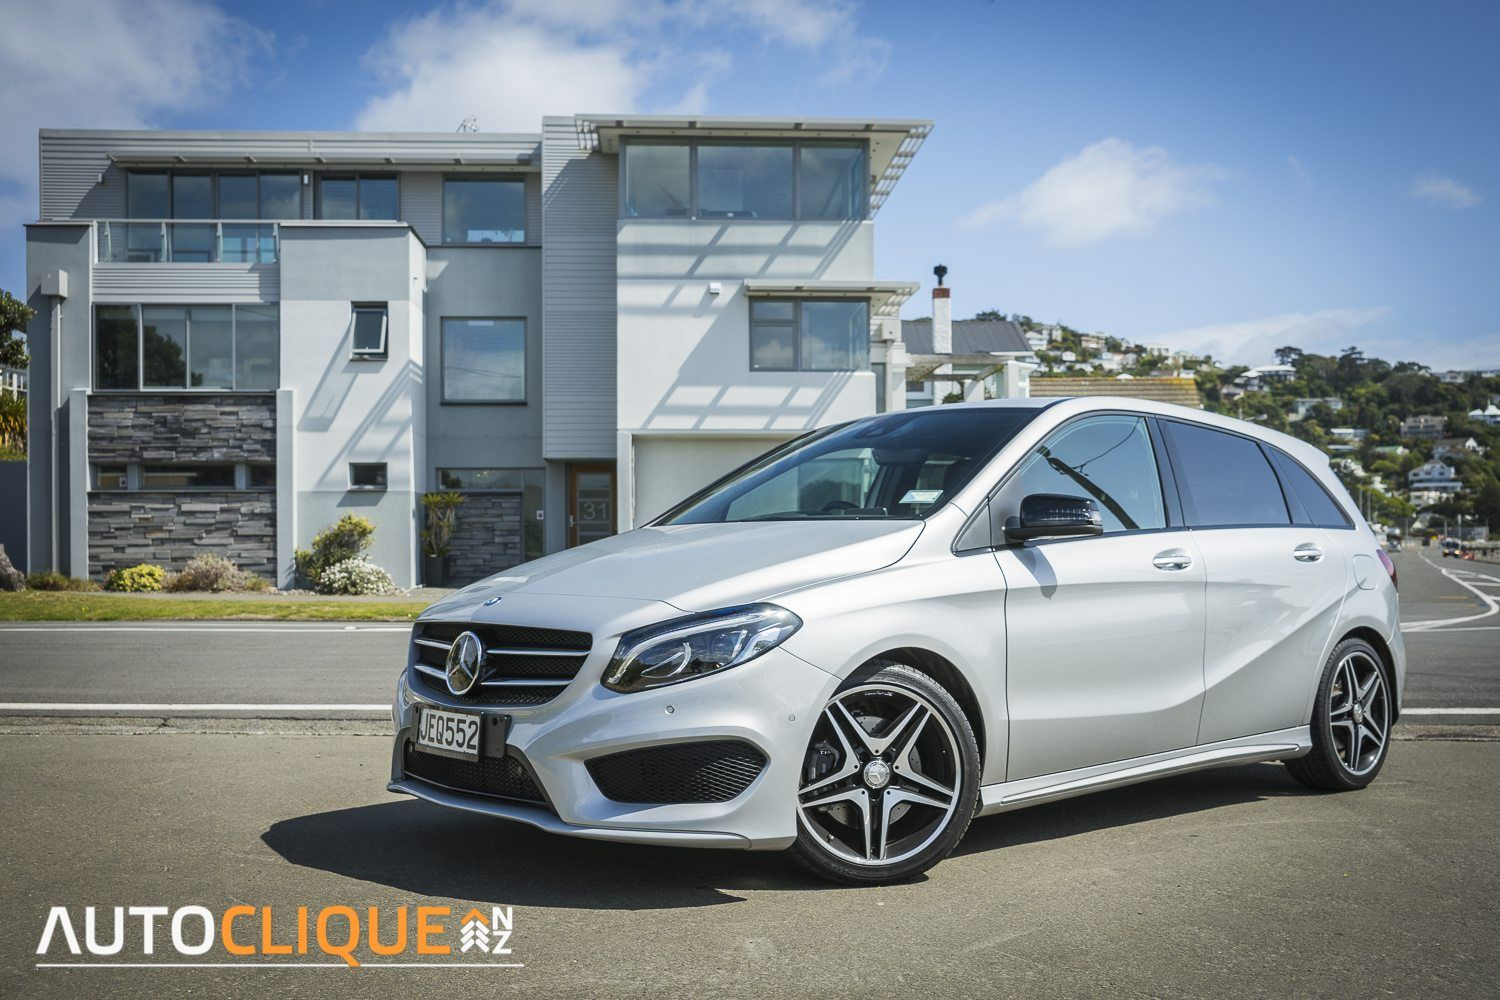 2015 MercedesBenz B250 Car Review The Sheep in Wolf's